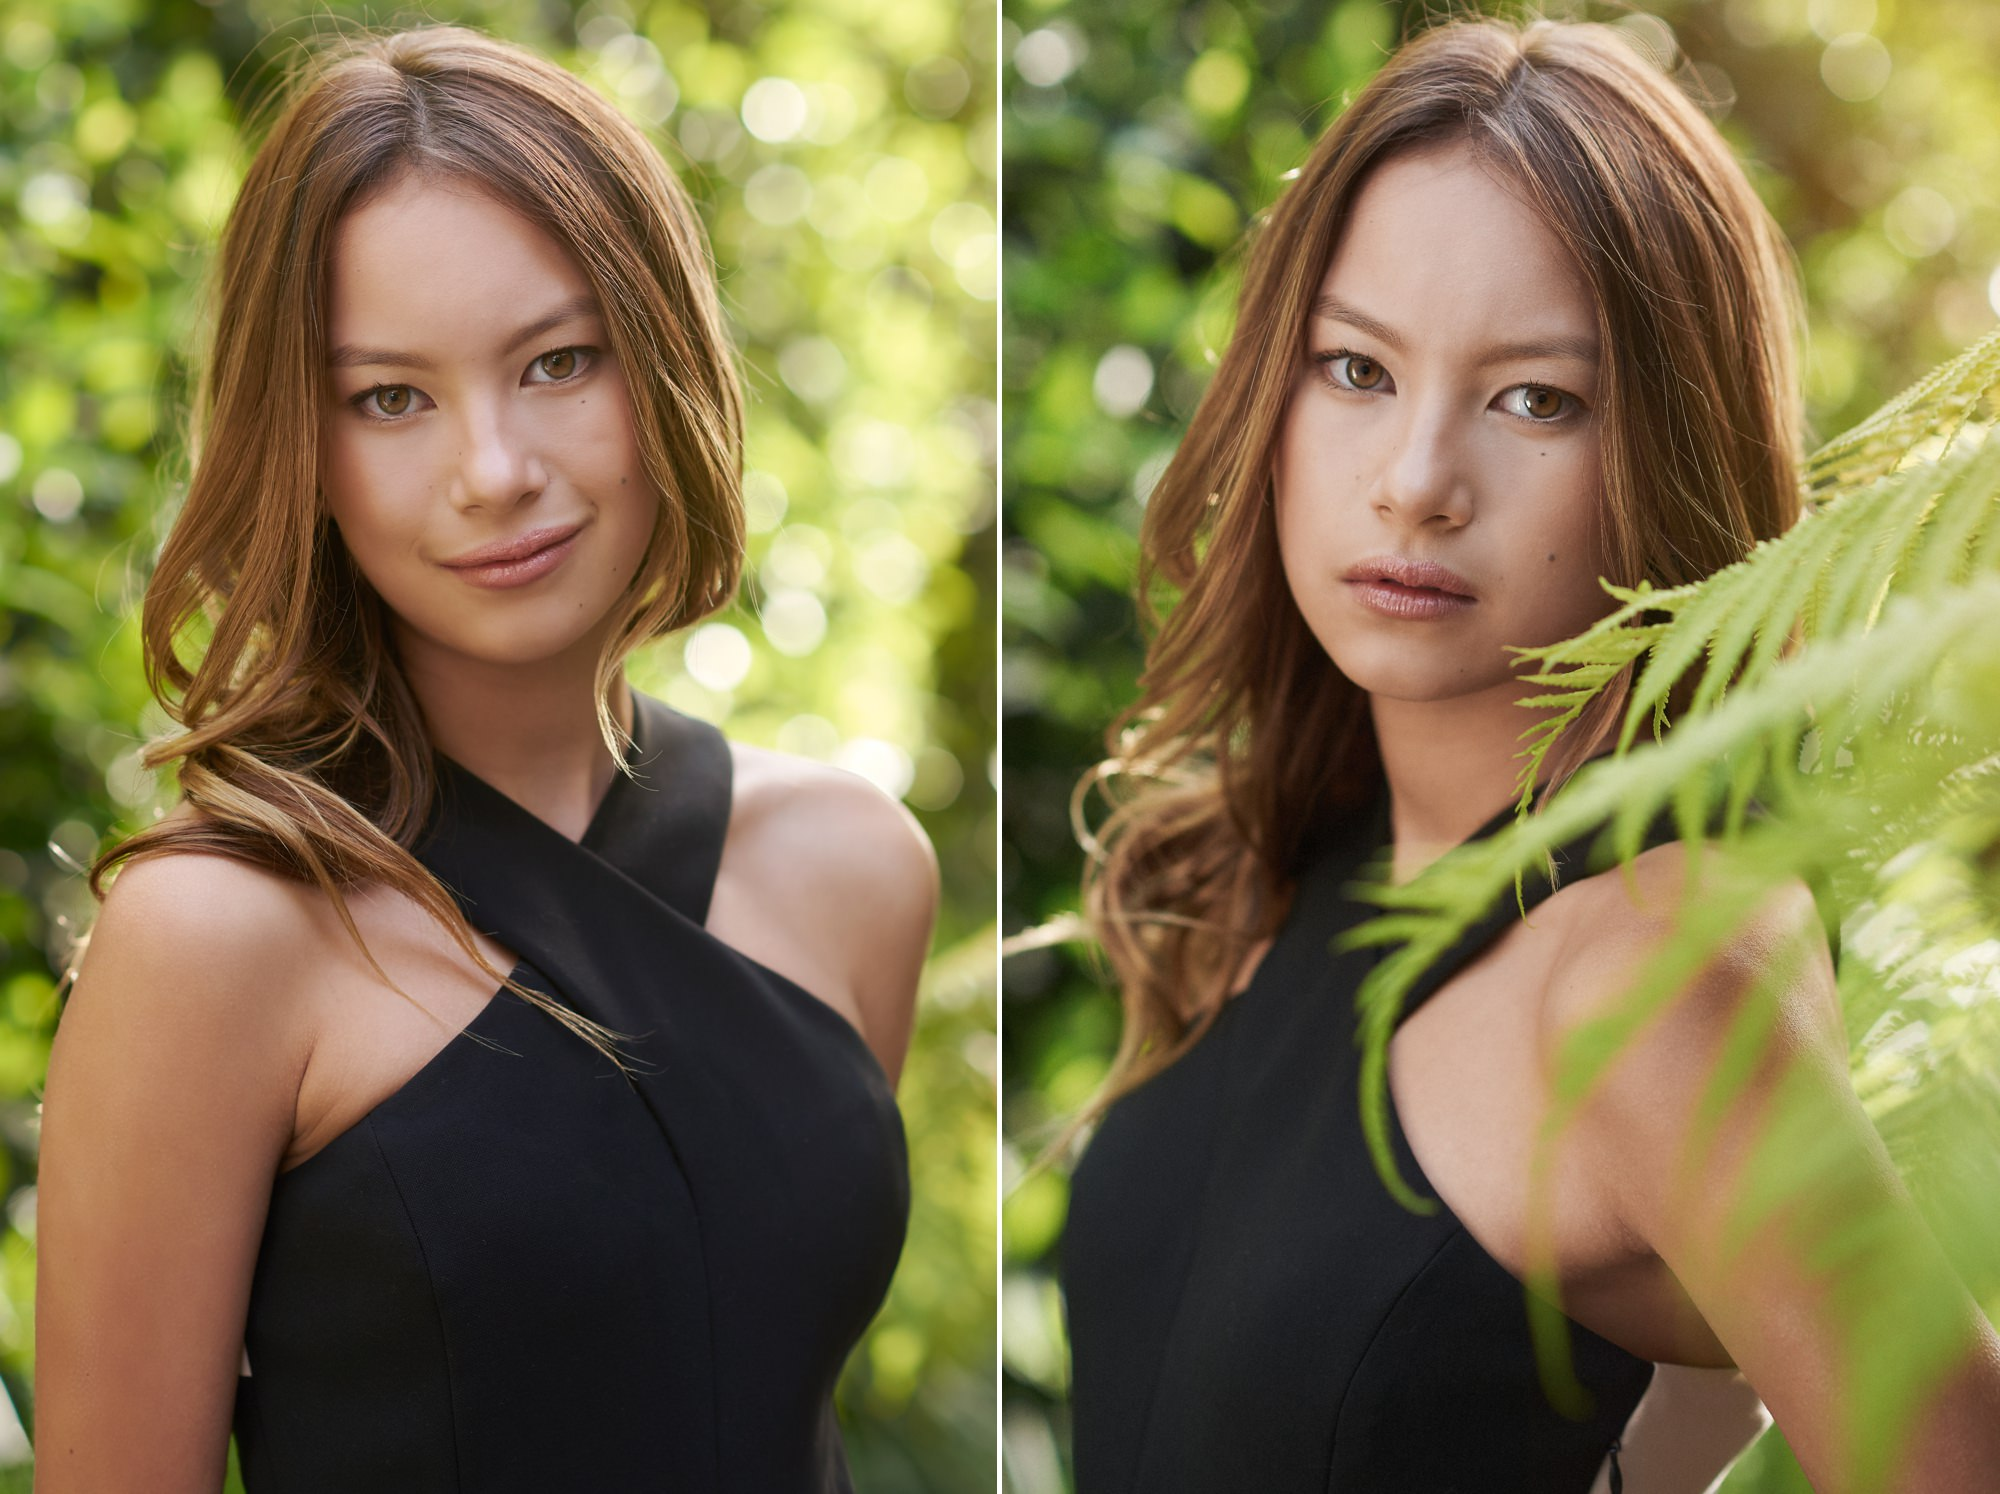 palos-verdes-estates-portrait-photographer-Marcus-Roy-Hoffman-palos-verdes-estates-portraits